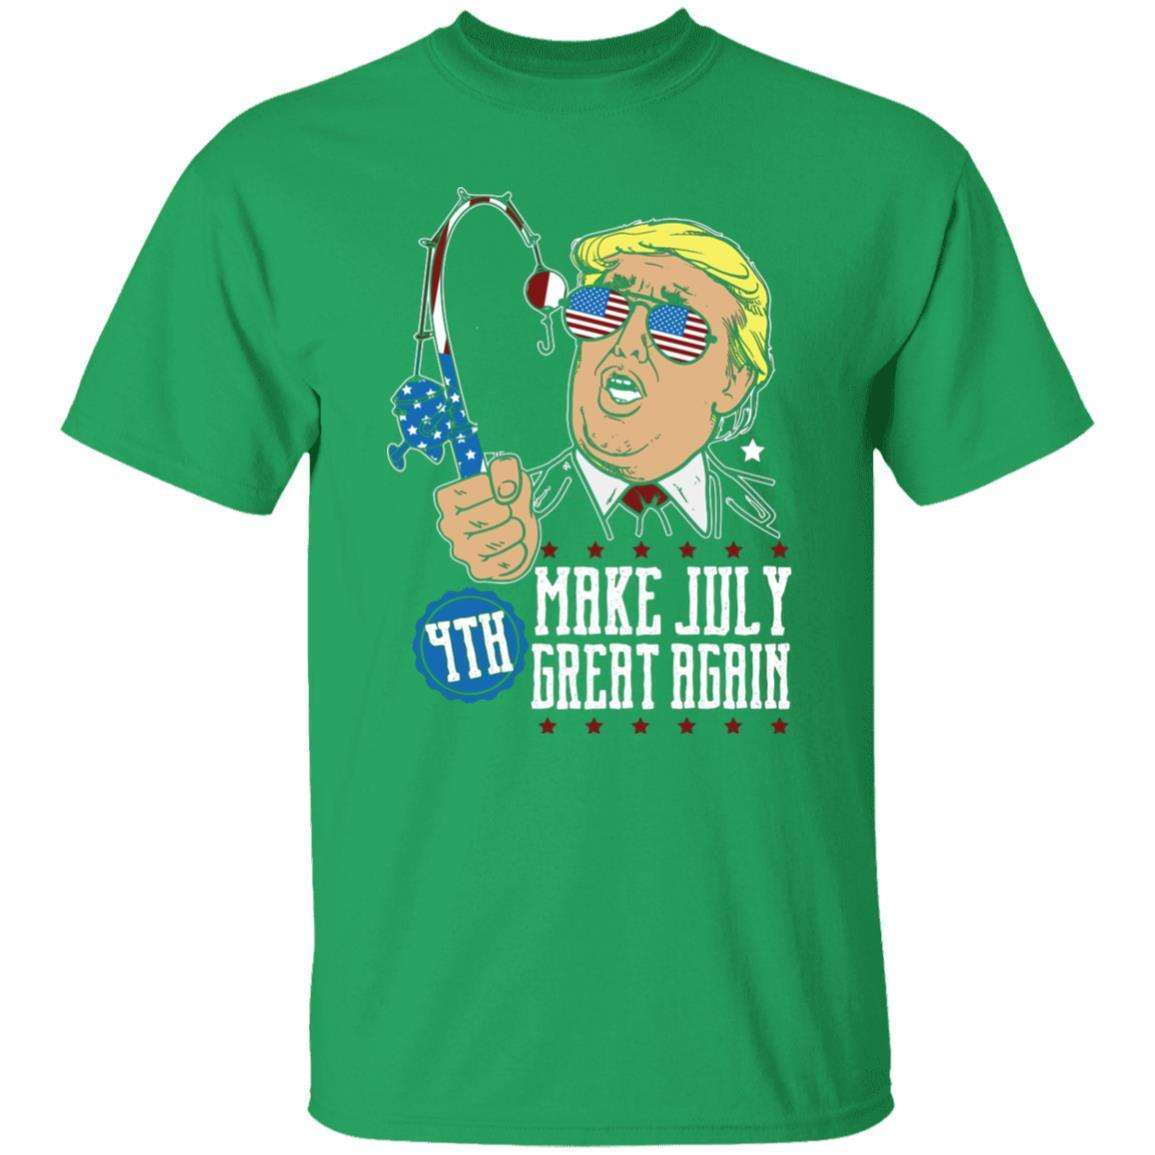 Make July 4th Great Again